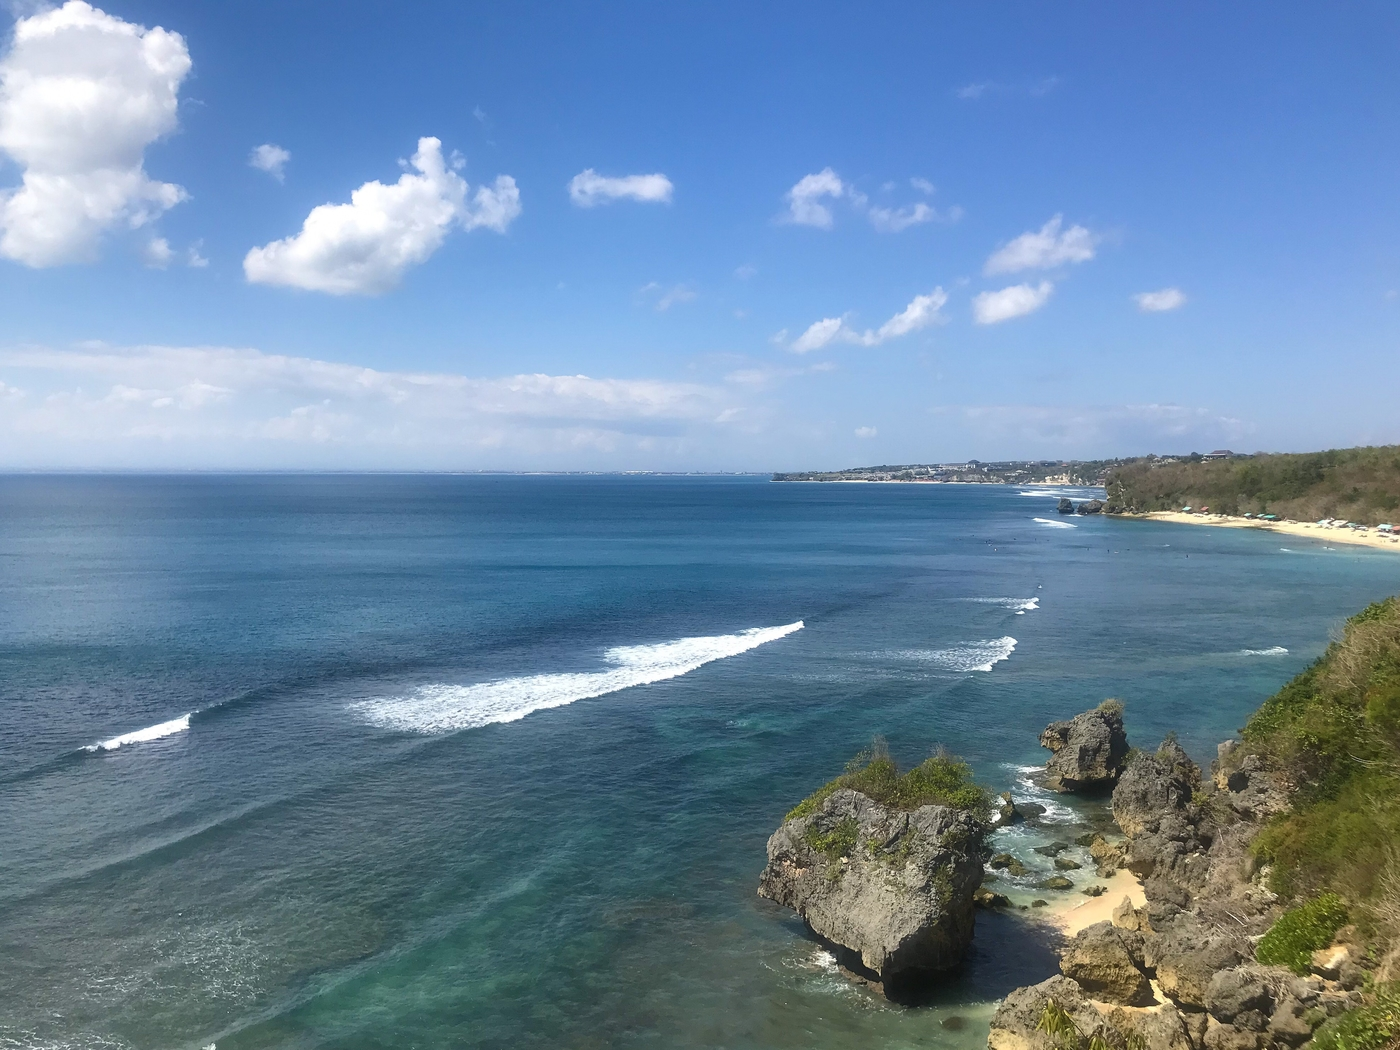 Our tried and tested guide to Uluwatu will have you set for your best vacay yet